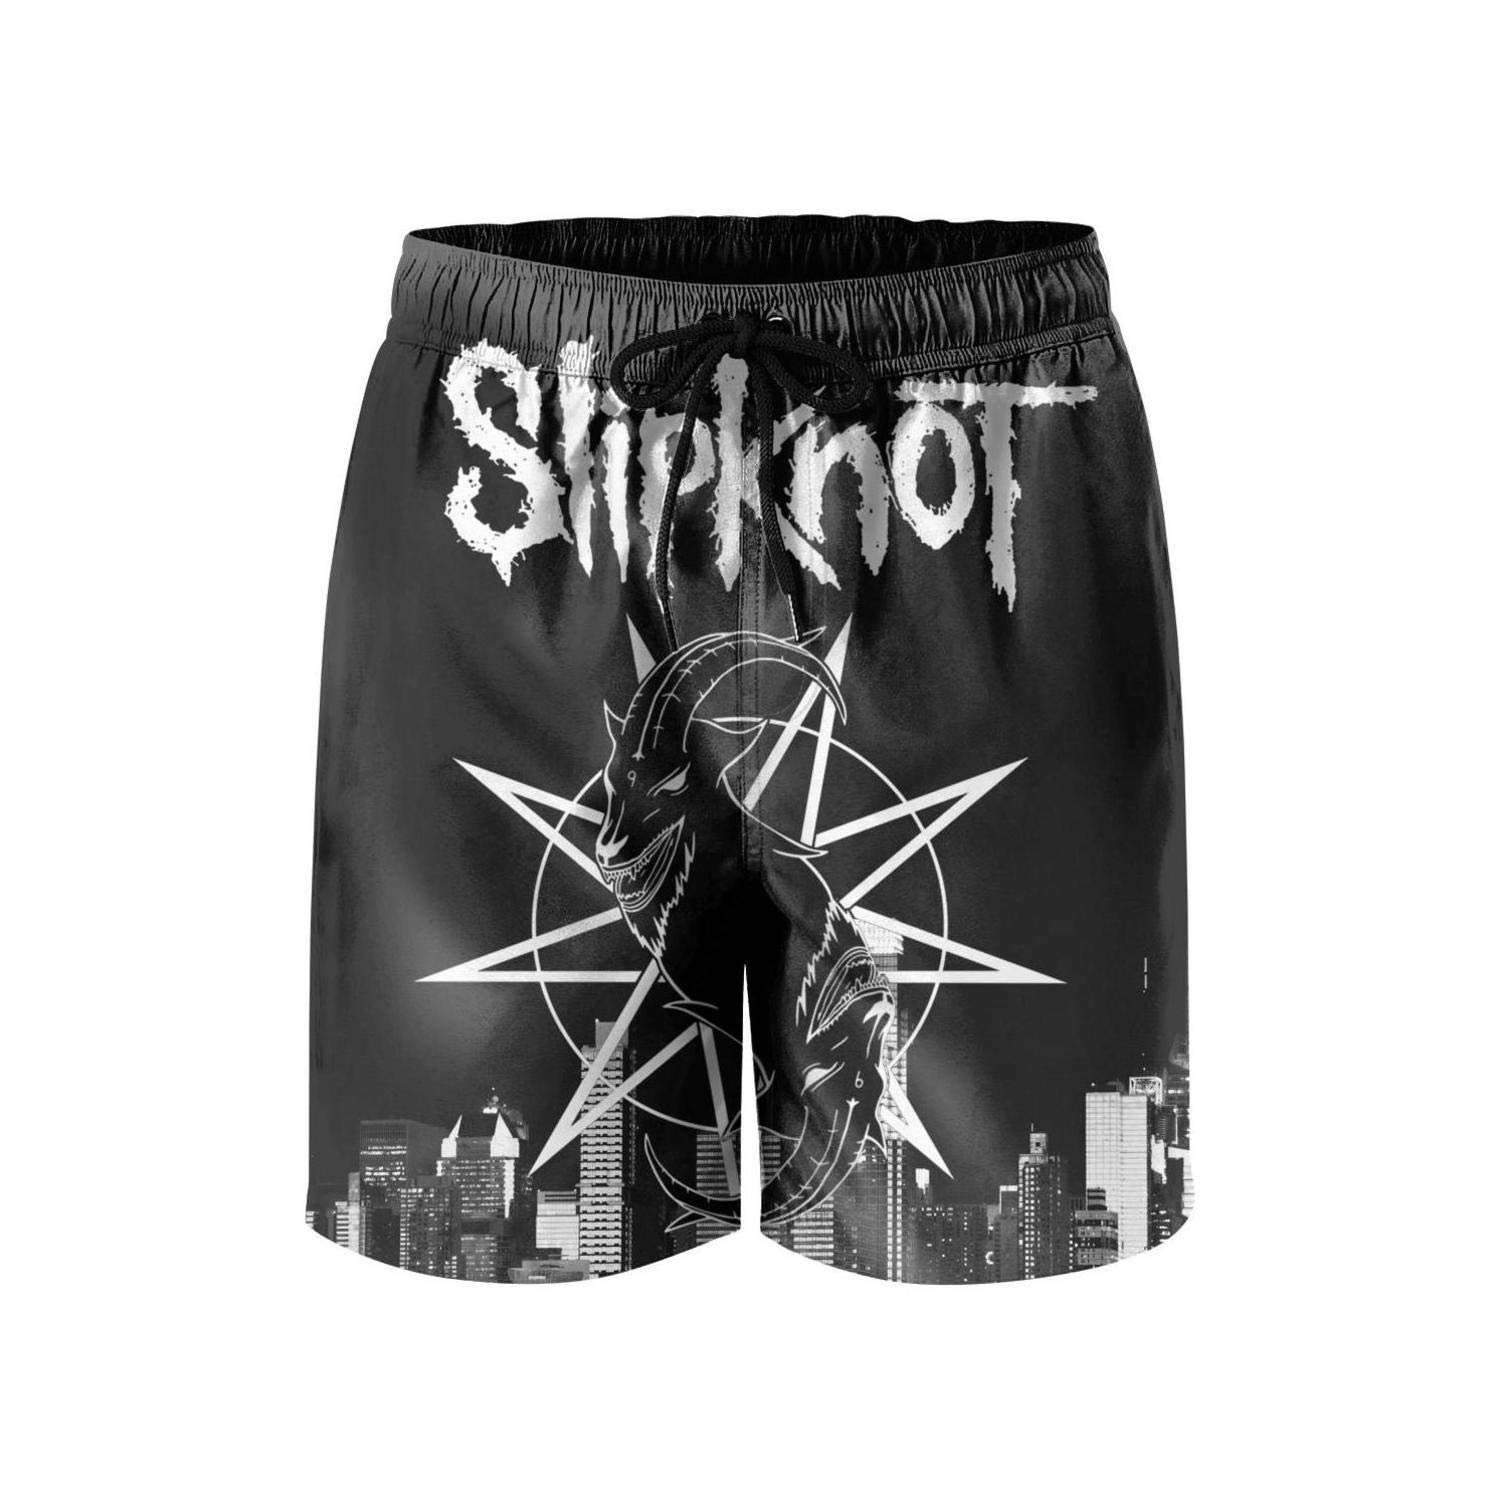 PUHANC Swim Trunks Shorts for Men Vacation Breathable Swimming Trunks